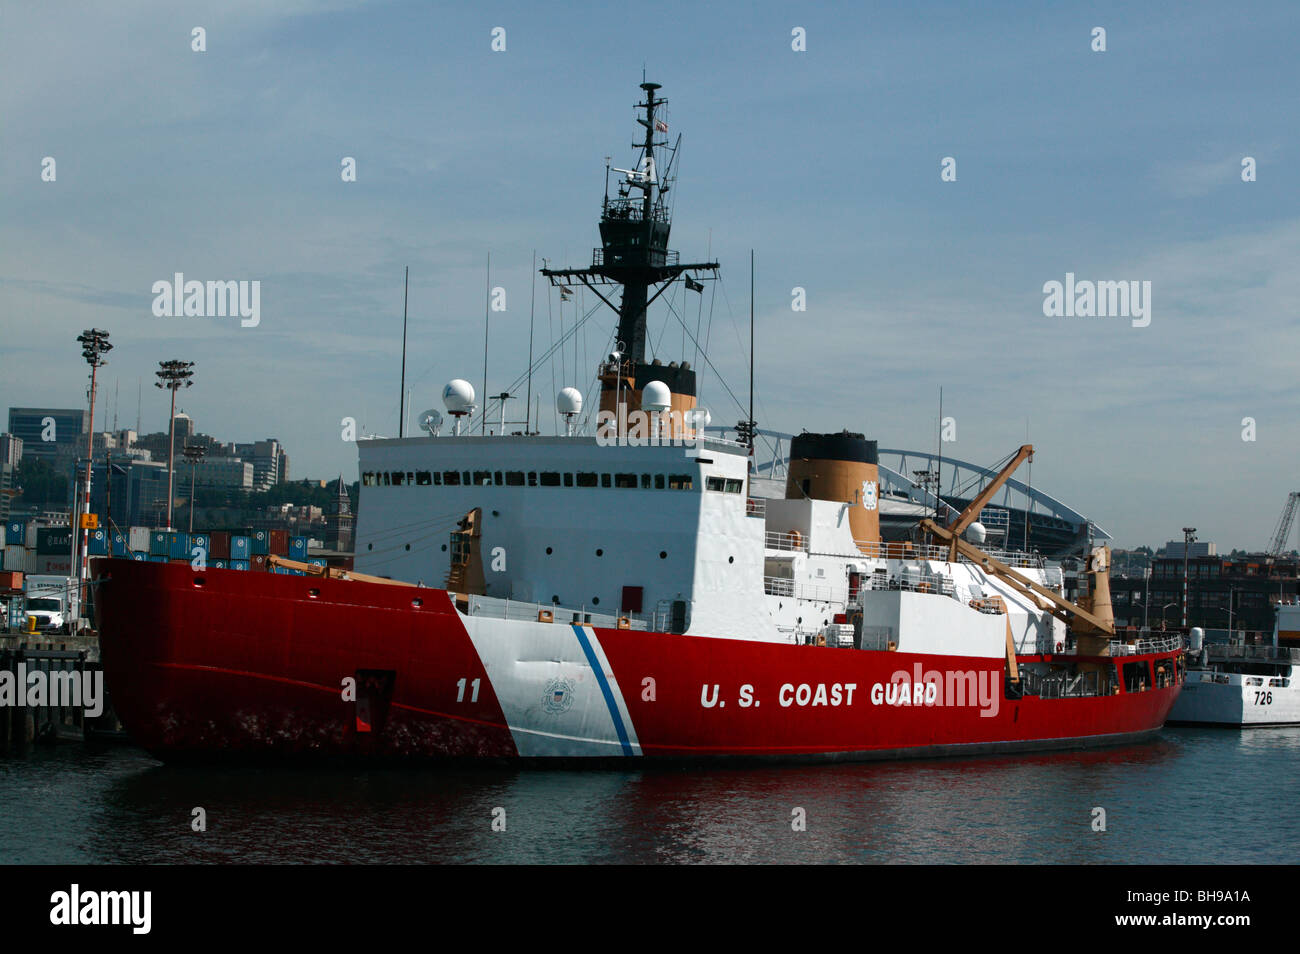 A US Coast Guard  icebreaker vessel moored up at the US Coast Guard Station Seattle - Stock Image